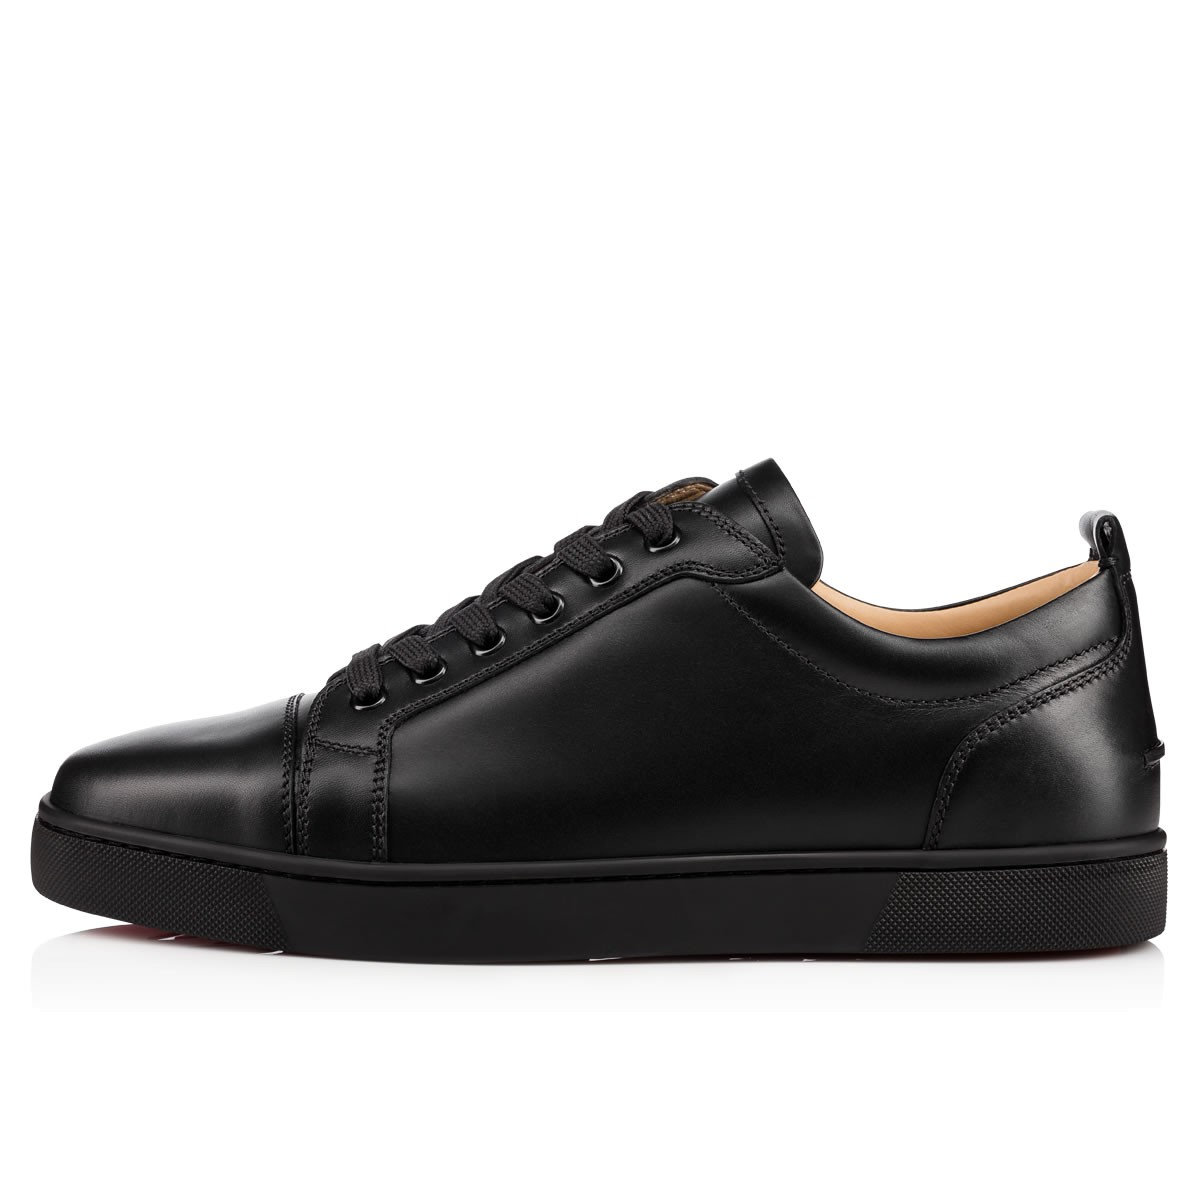 wholesale dealer f8f72 80f18 Louis Junior Black/Black Leather - Men Shoes - Christian Louboutin